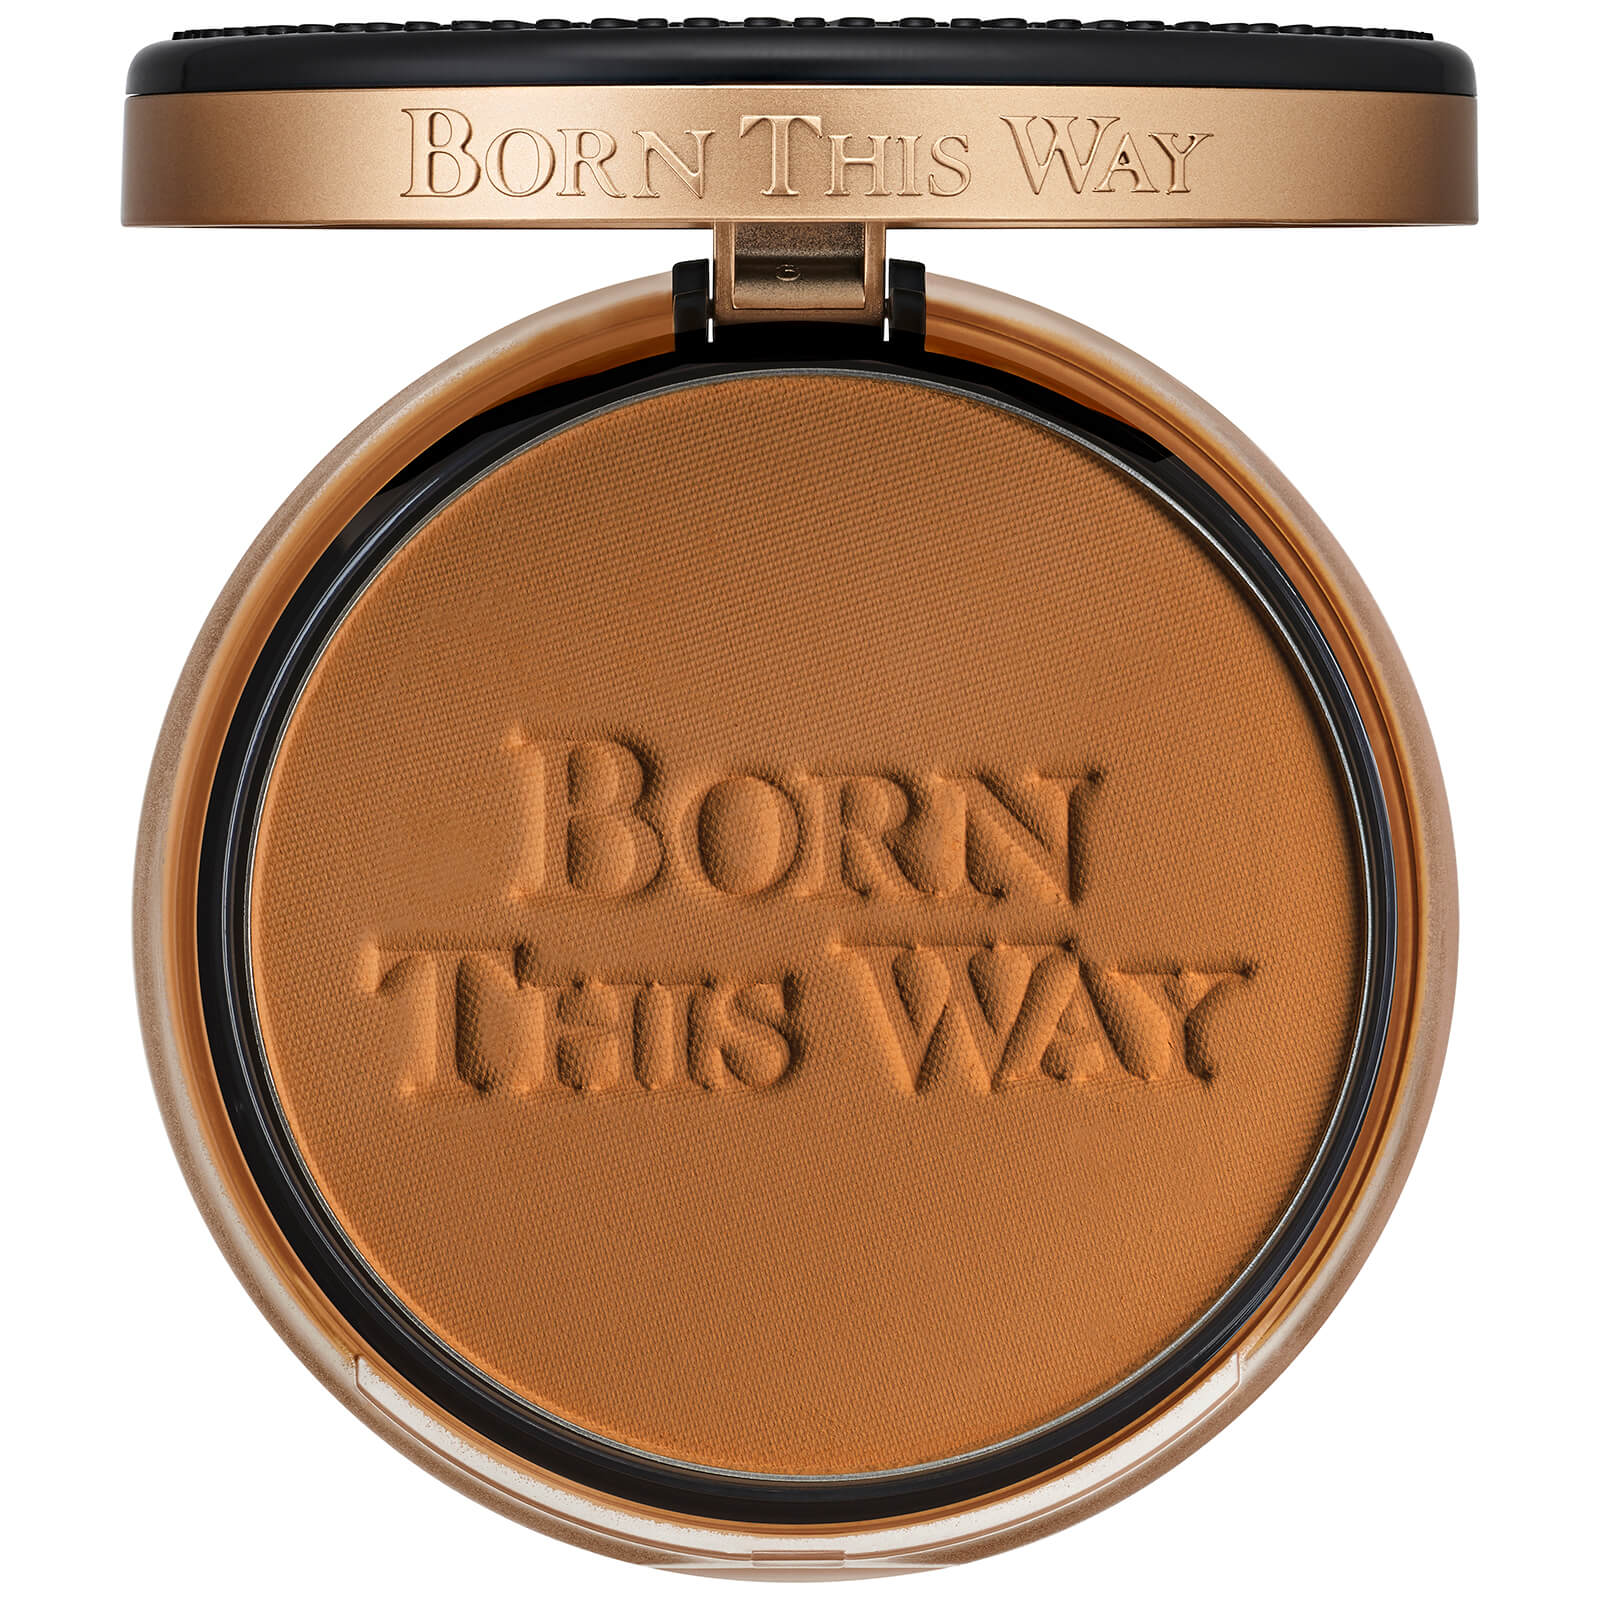 Too Faced Born This Way Multi-Use Complexion Powder (Various Shades) - Chai